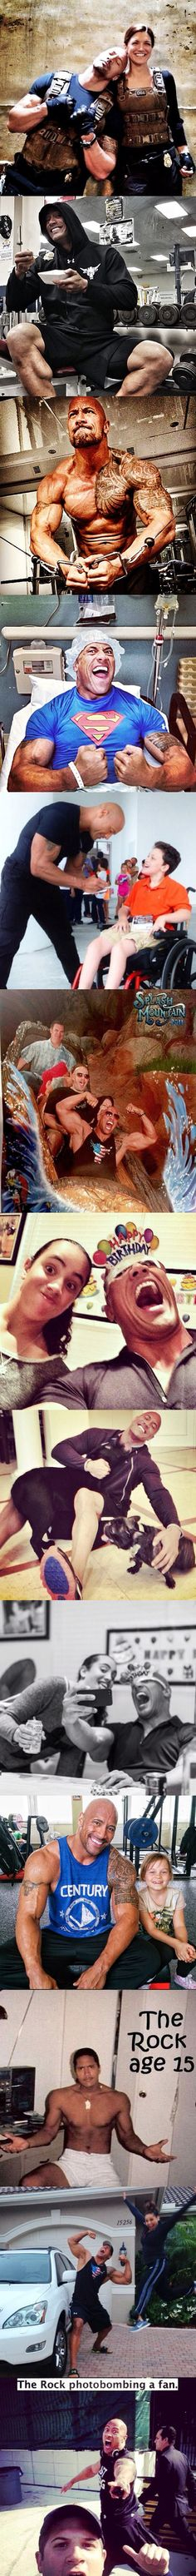 The Rock is awesome…